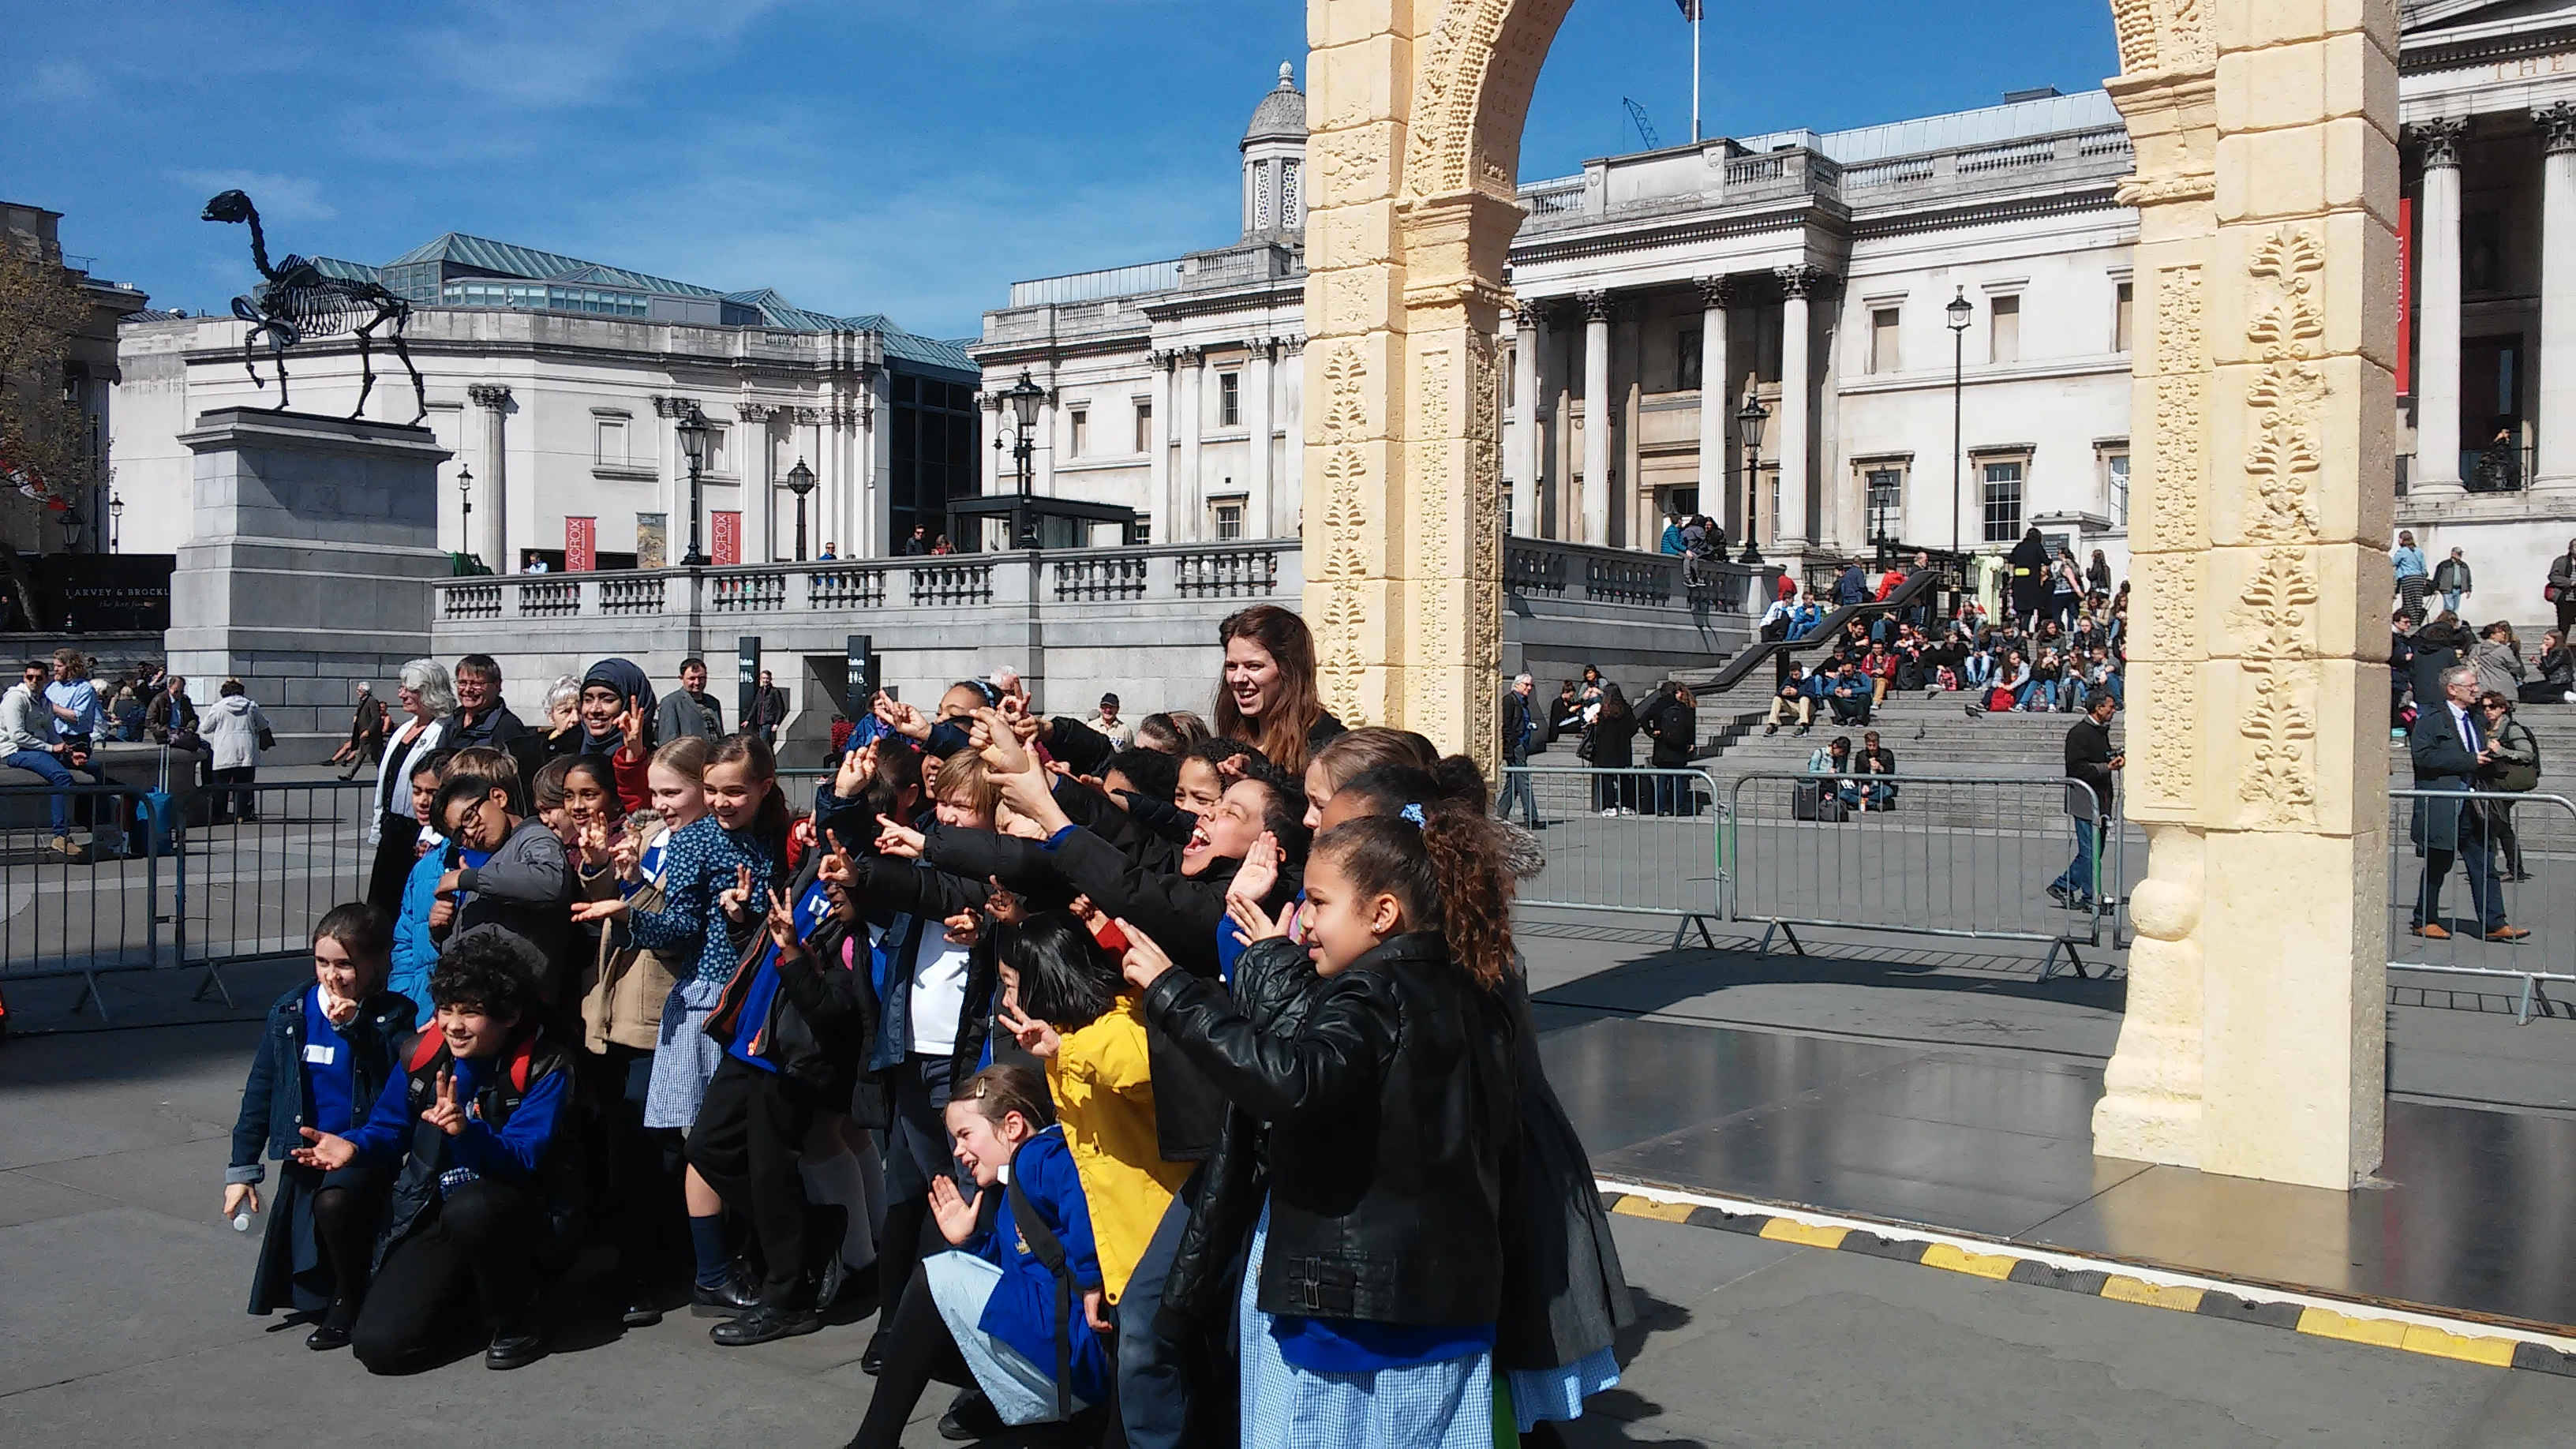 Palmyra's Arch and Gateways Programme revealed in London